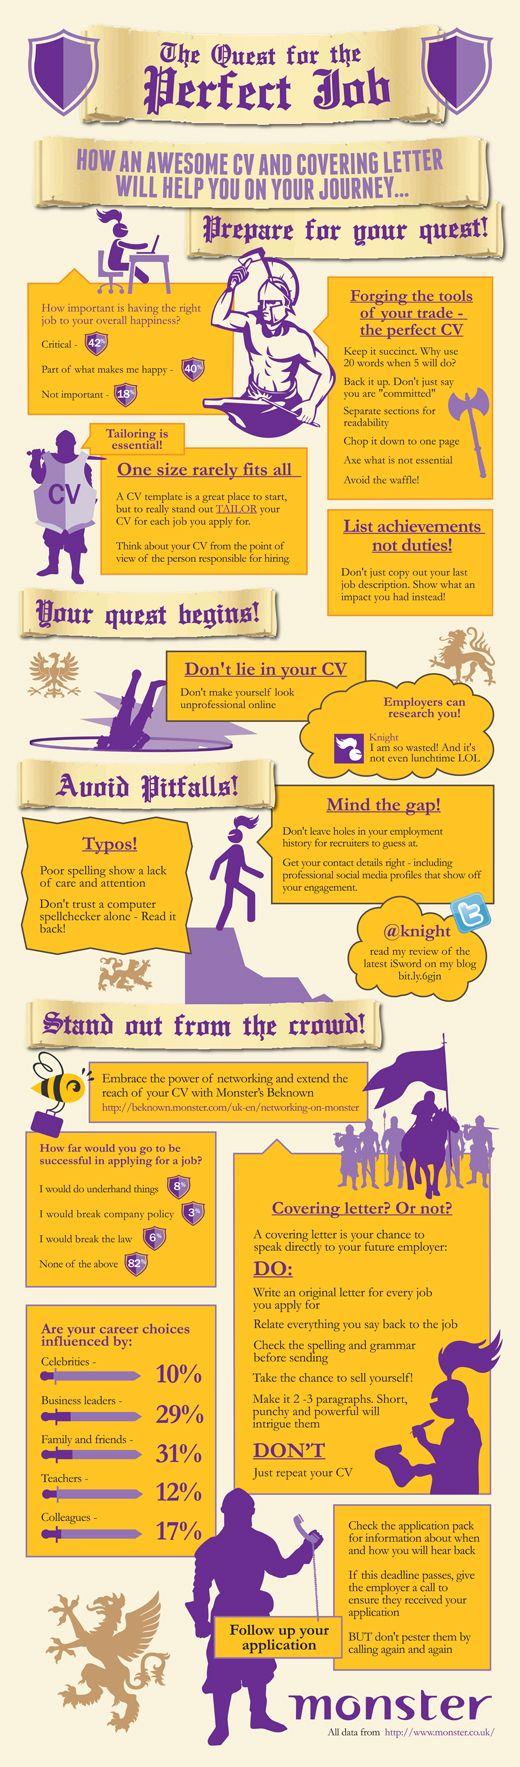 Awesome Infographic About How To Quest For The Perfect Job By